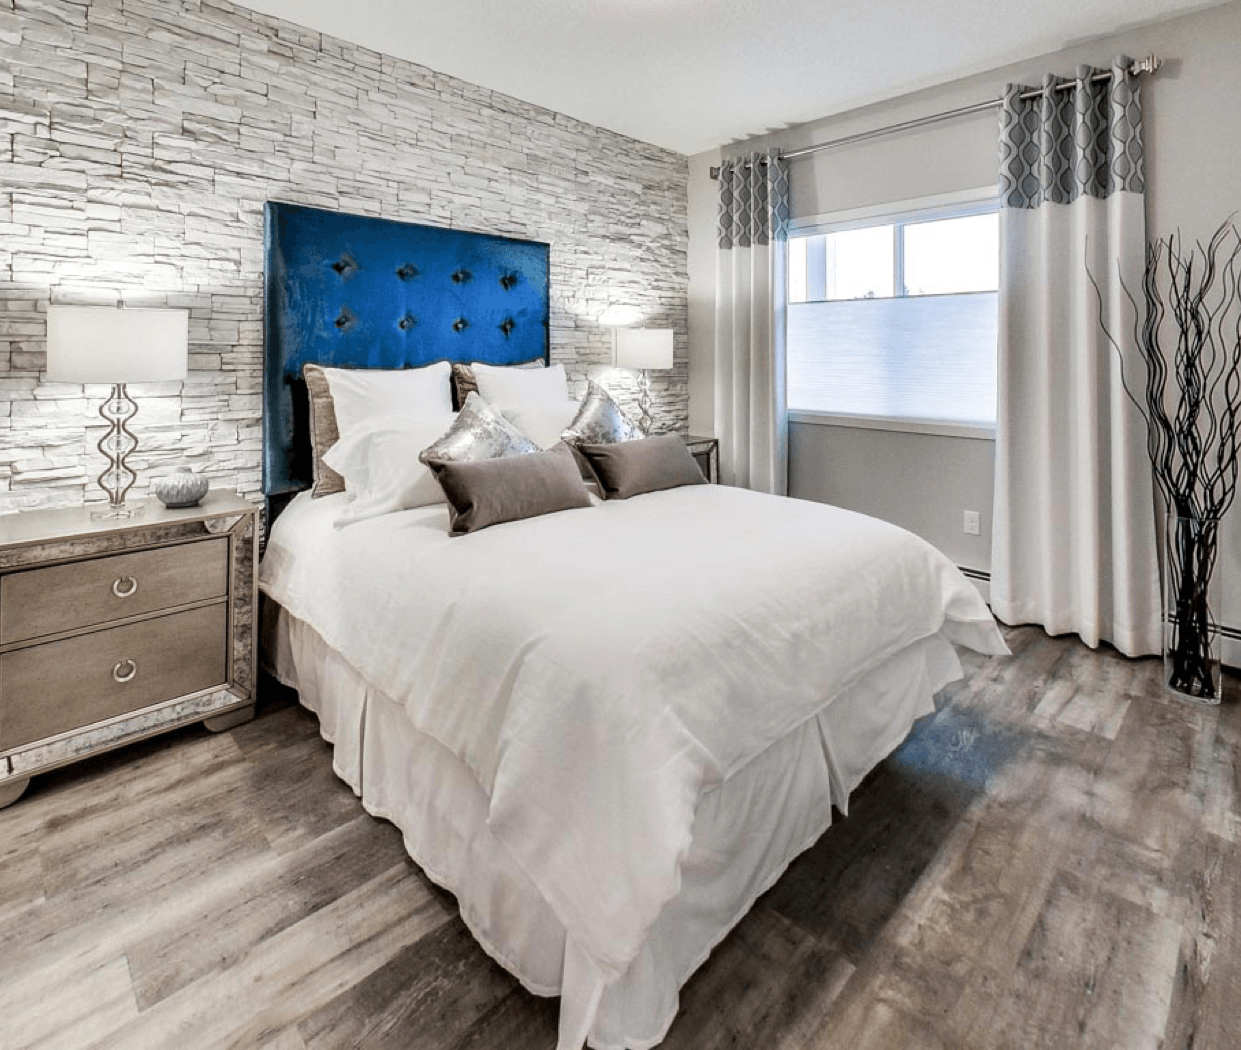 Welcome to ALOFT Crossroads of Rutherford Bedroom Image